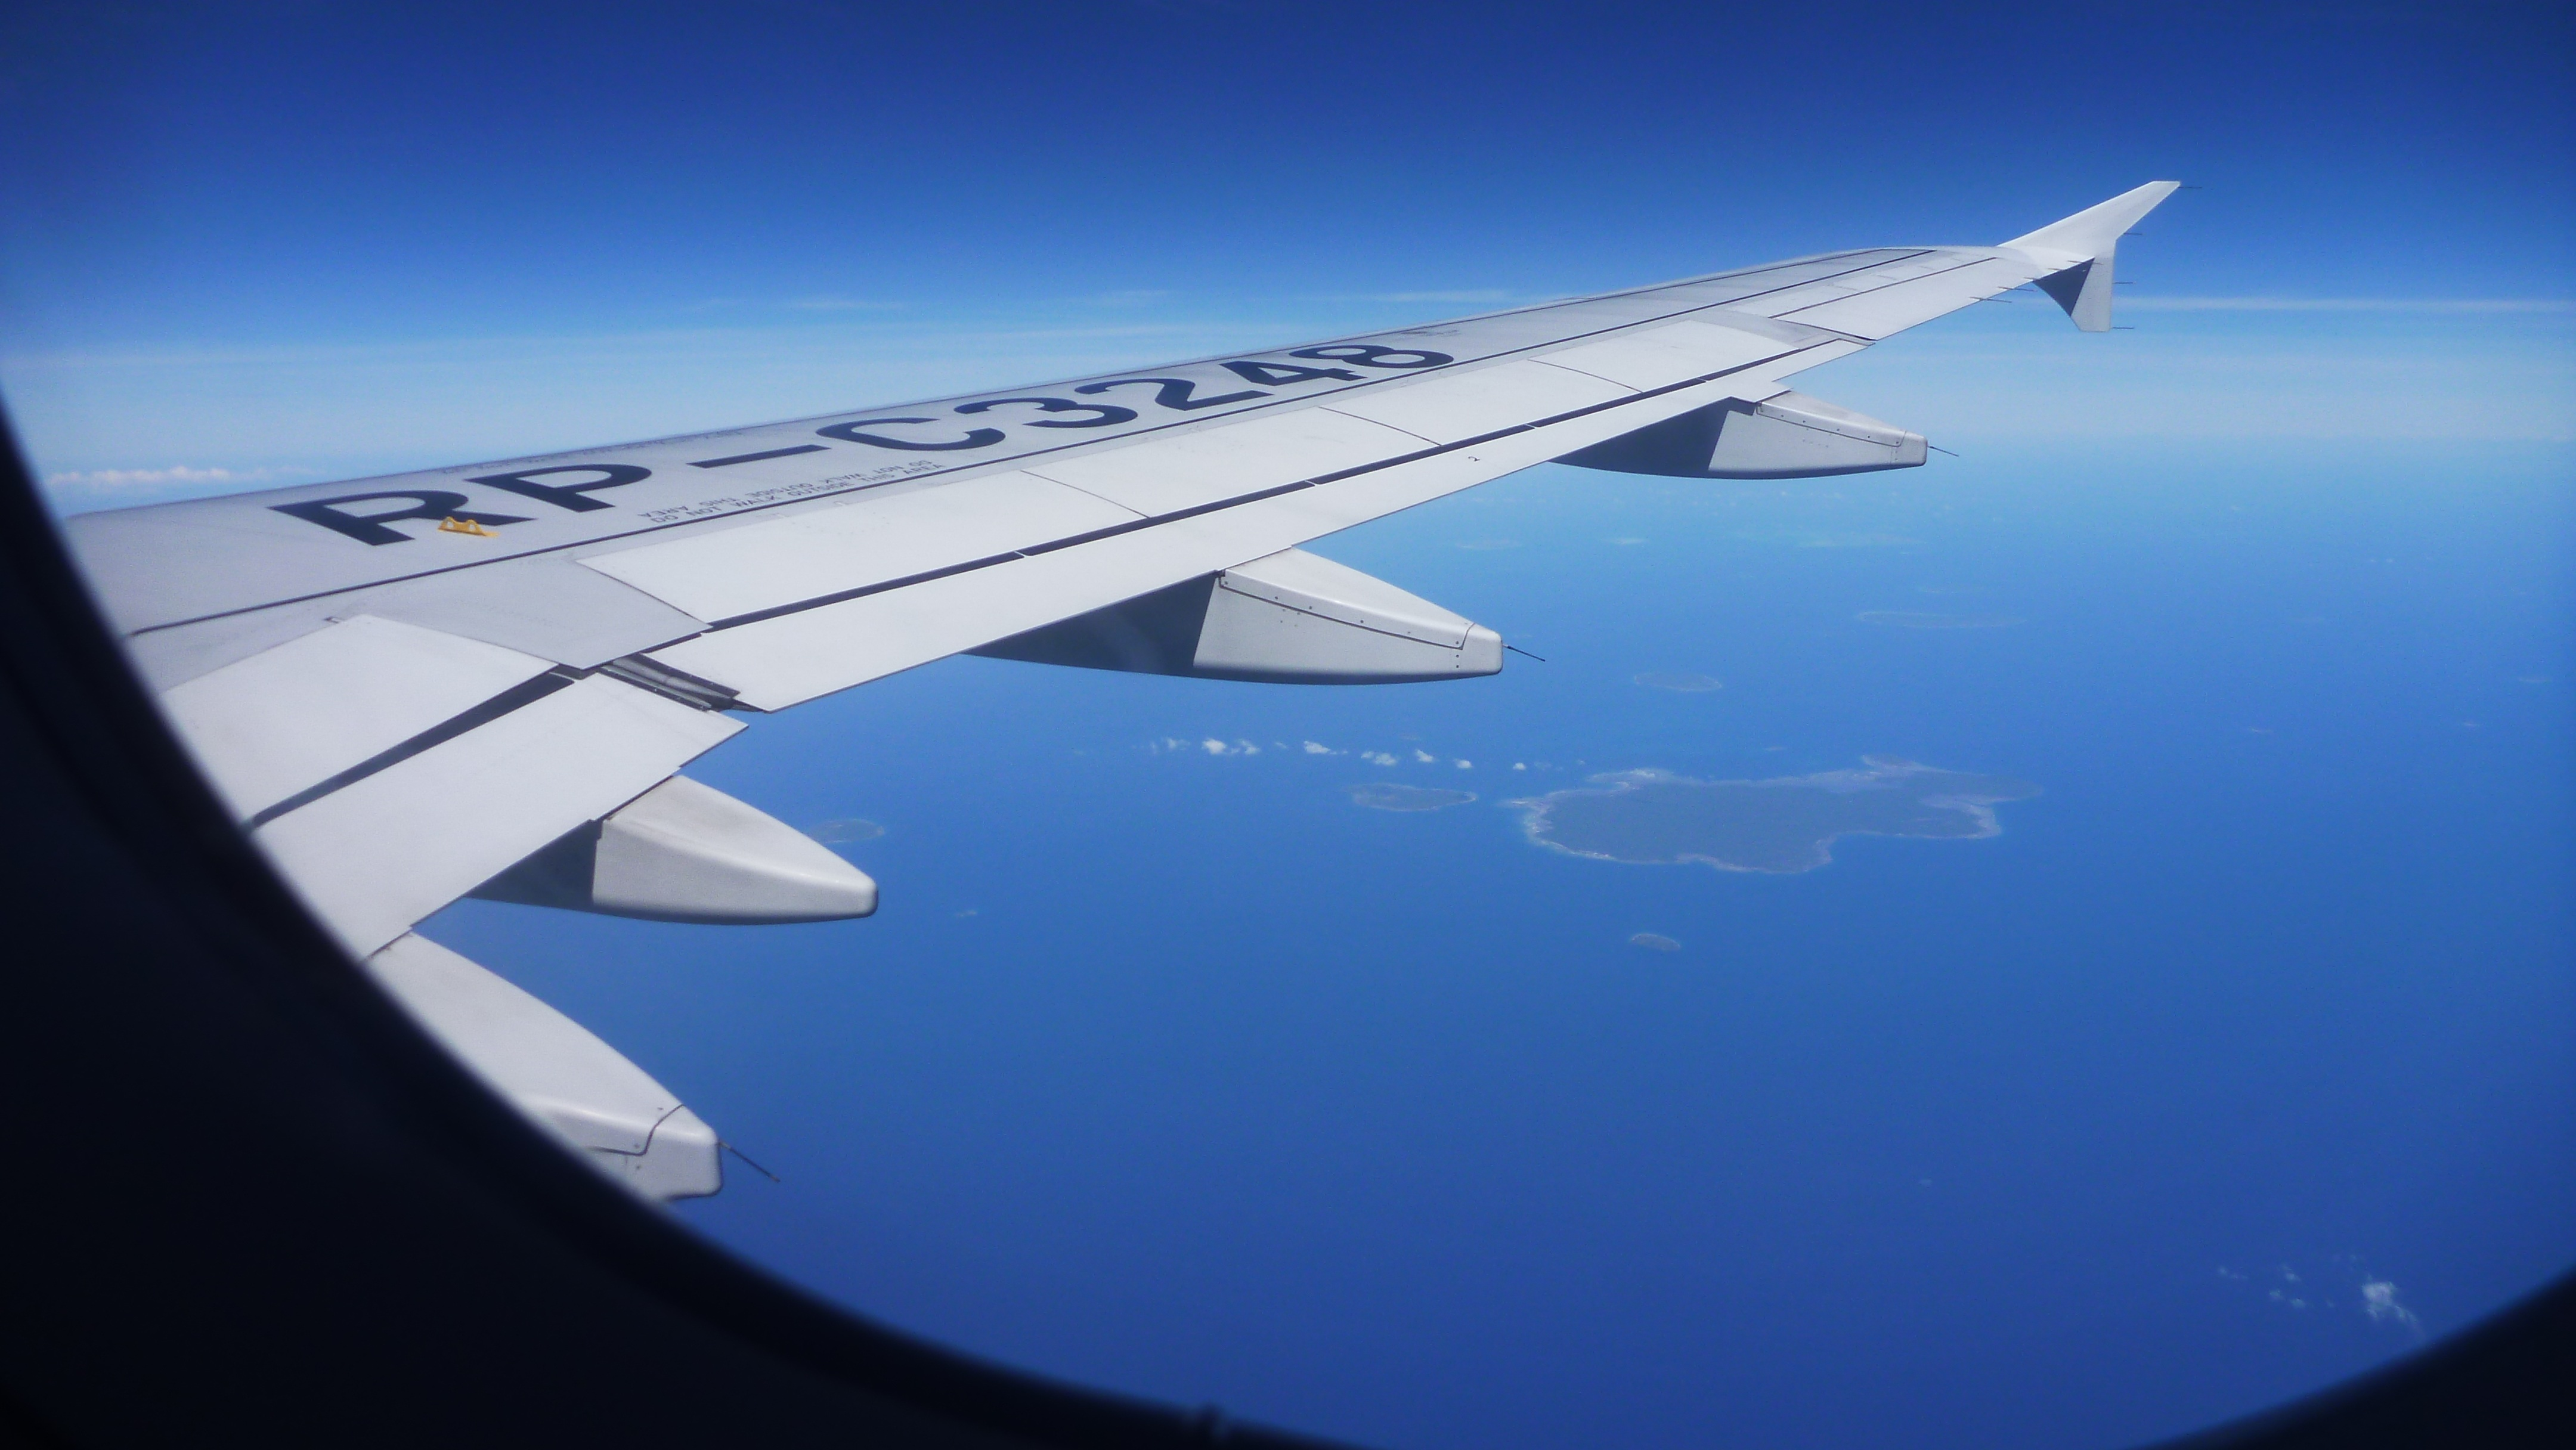 How to Get Good Deals on Airfare